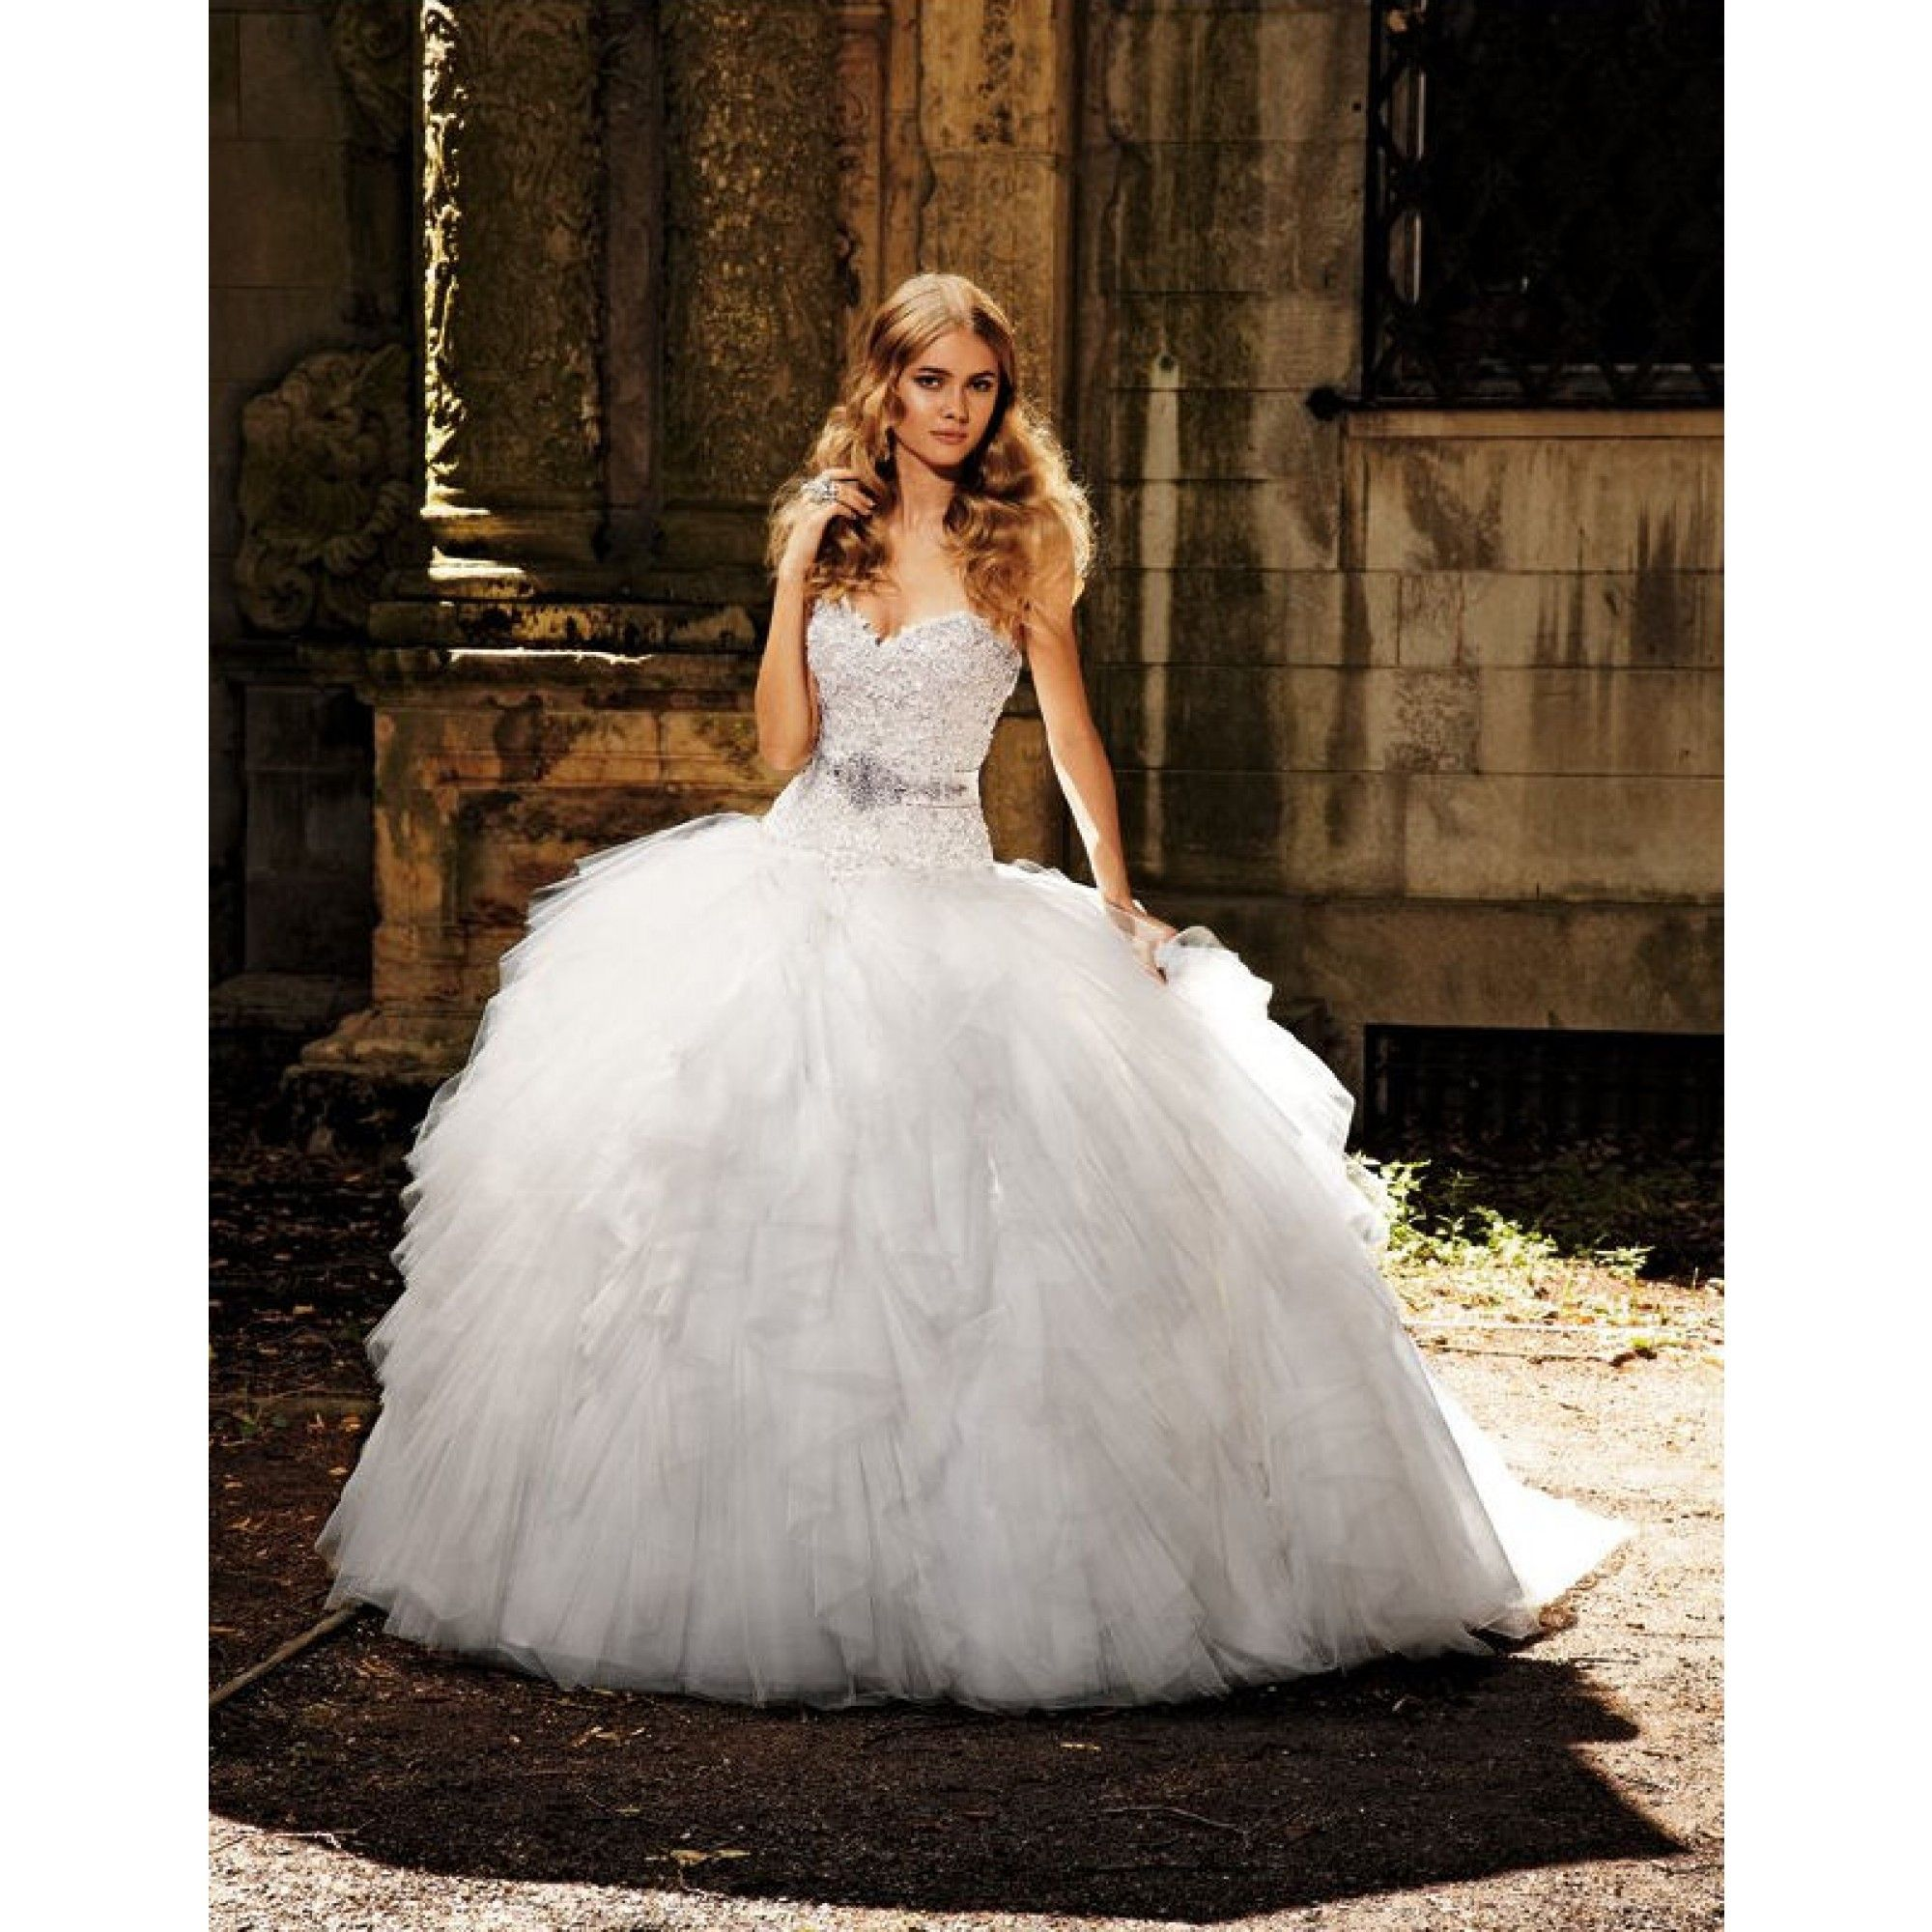 Eve of milady wedding dresses with - Bridal Gowns Eve Of Milady Princess Ball Gown Wedding Dress With Sweetheart Neckline And Dropped Waist Waistline